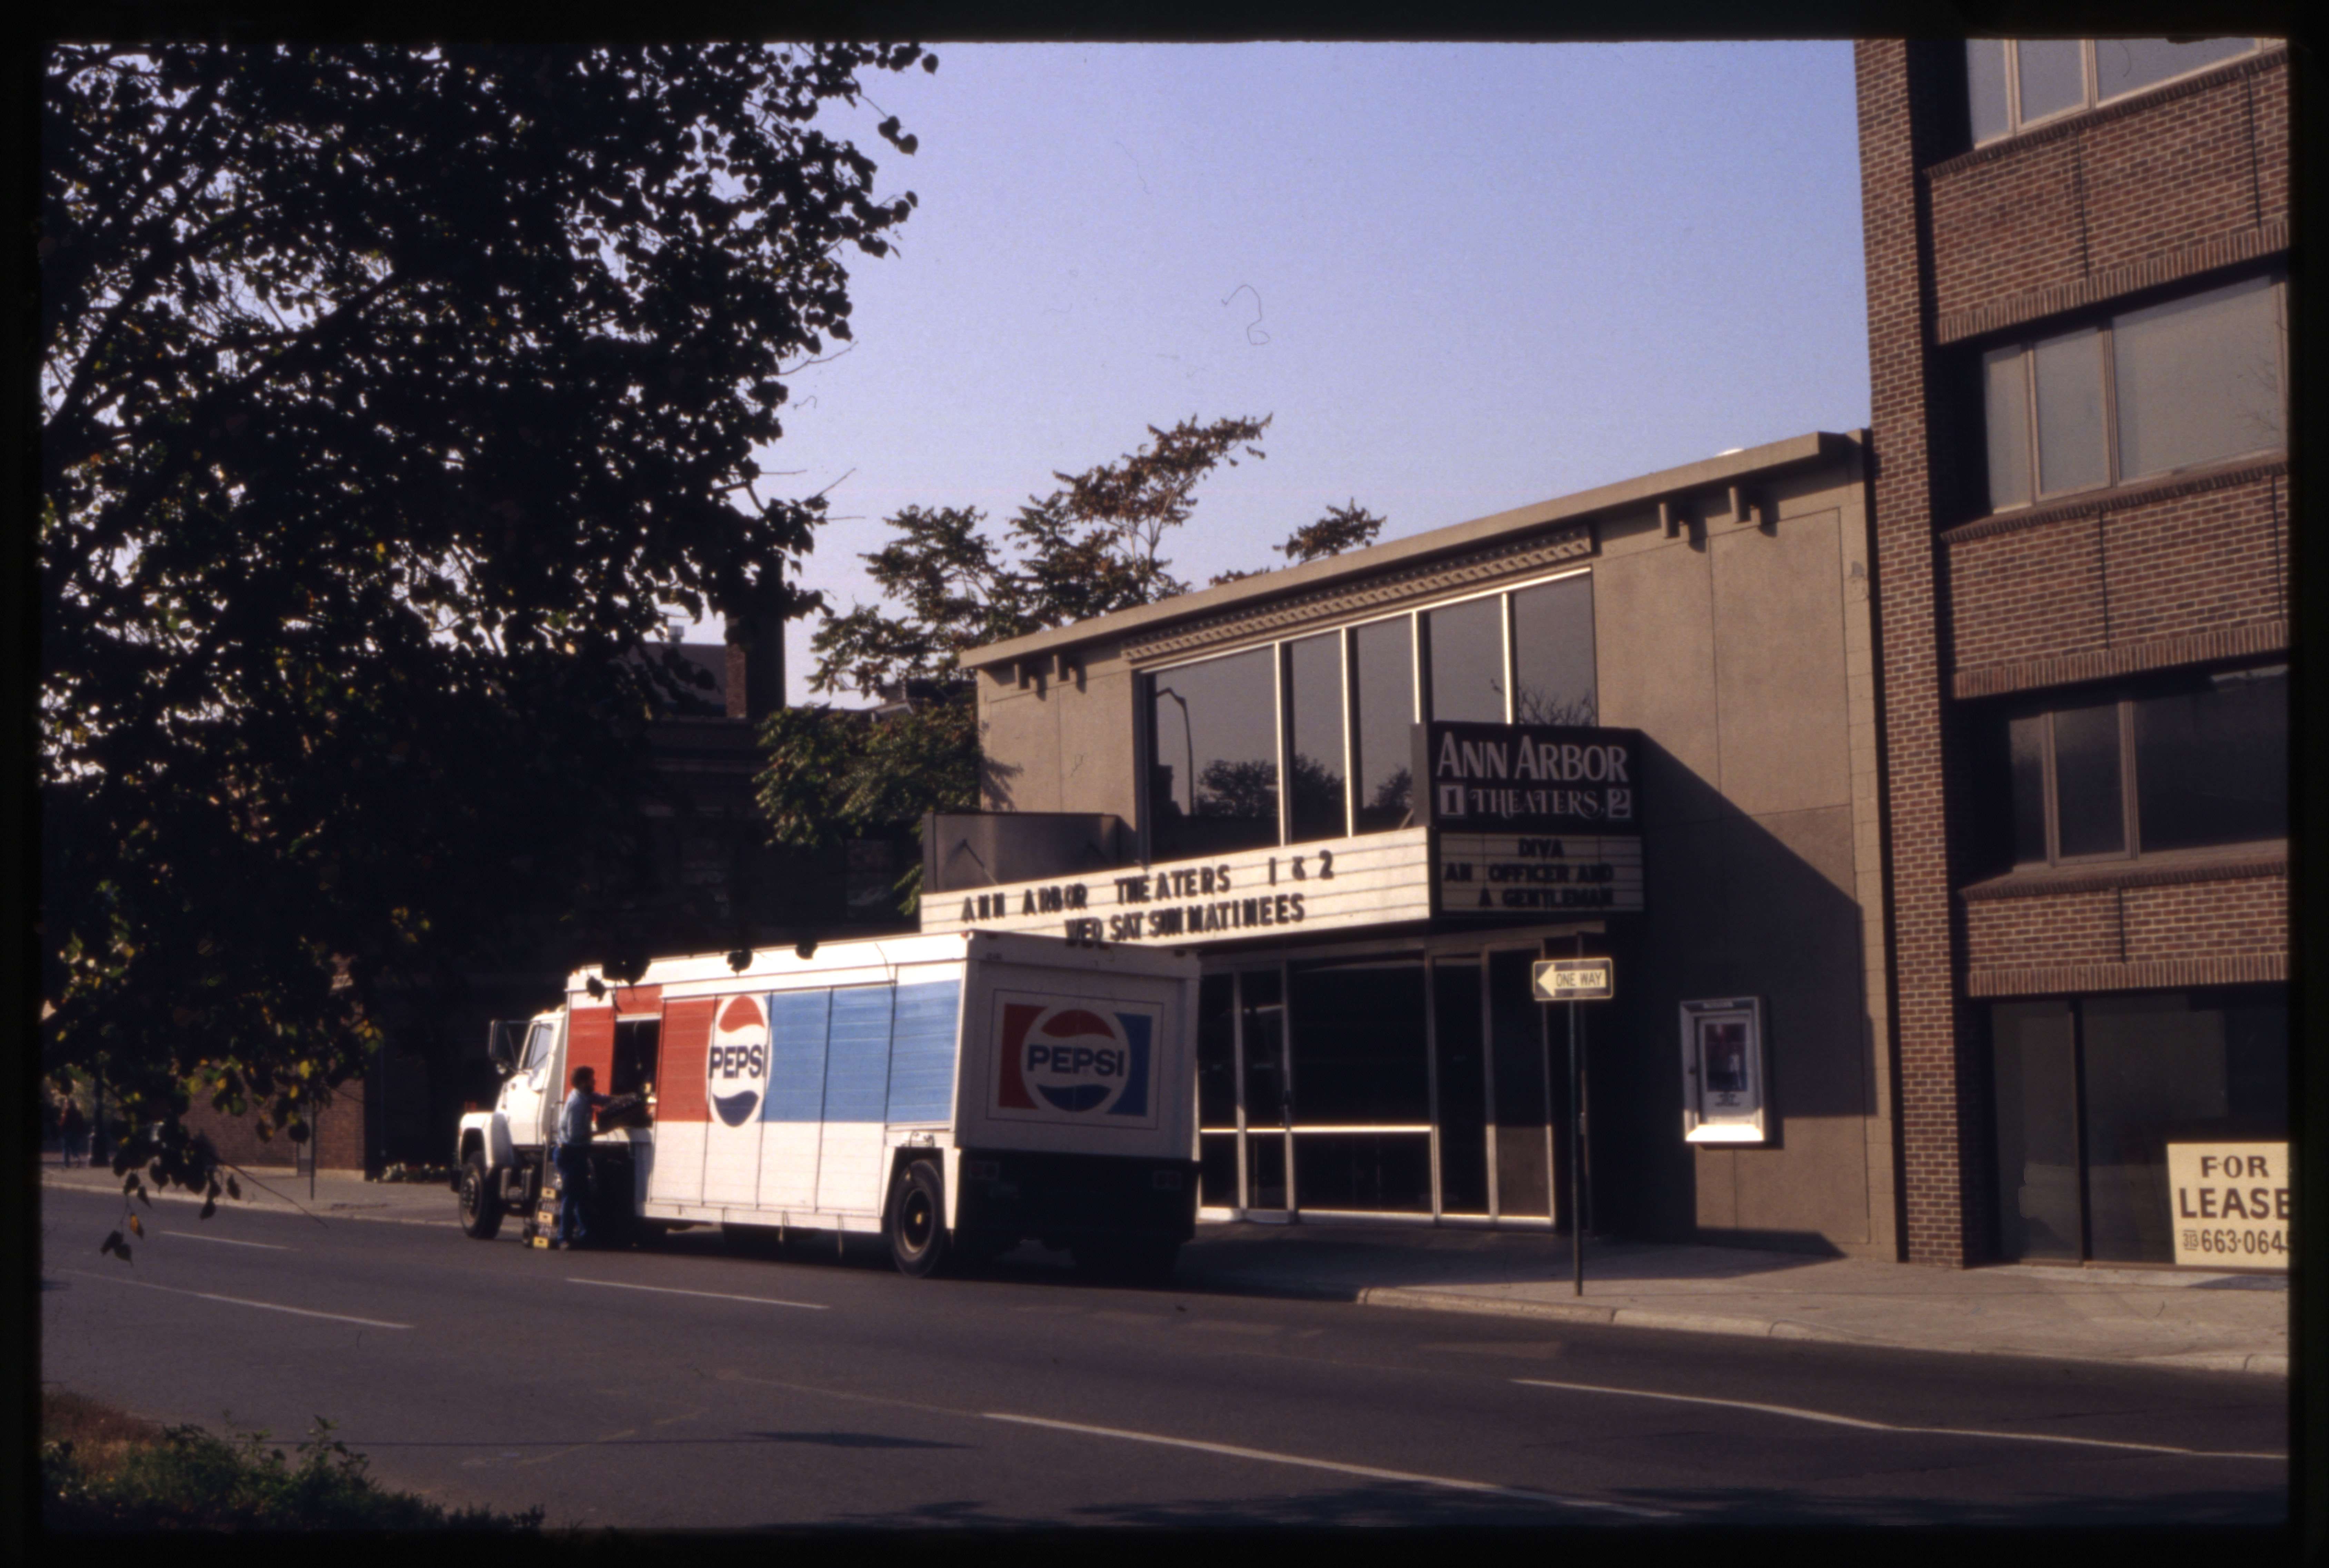 Ann Arbor Theaters, 1982 image